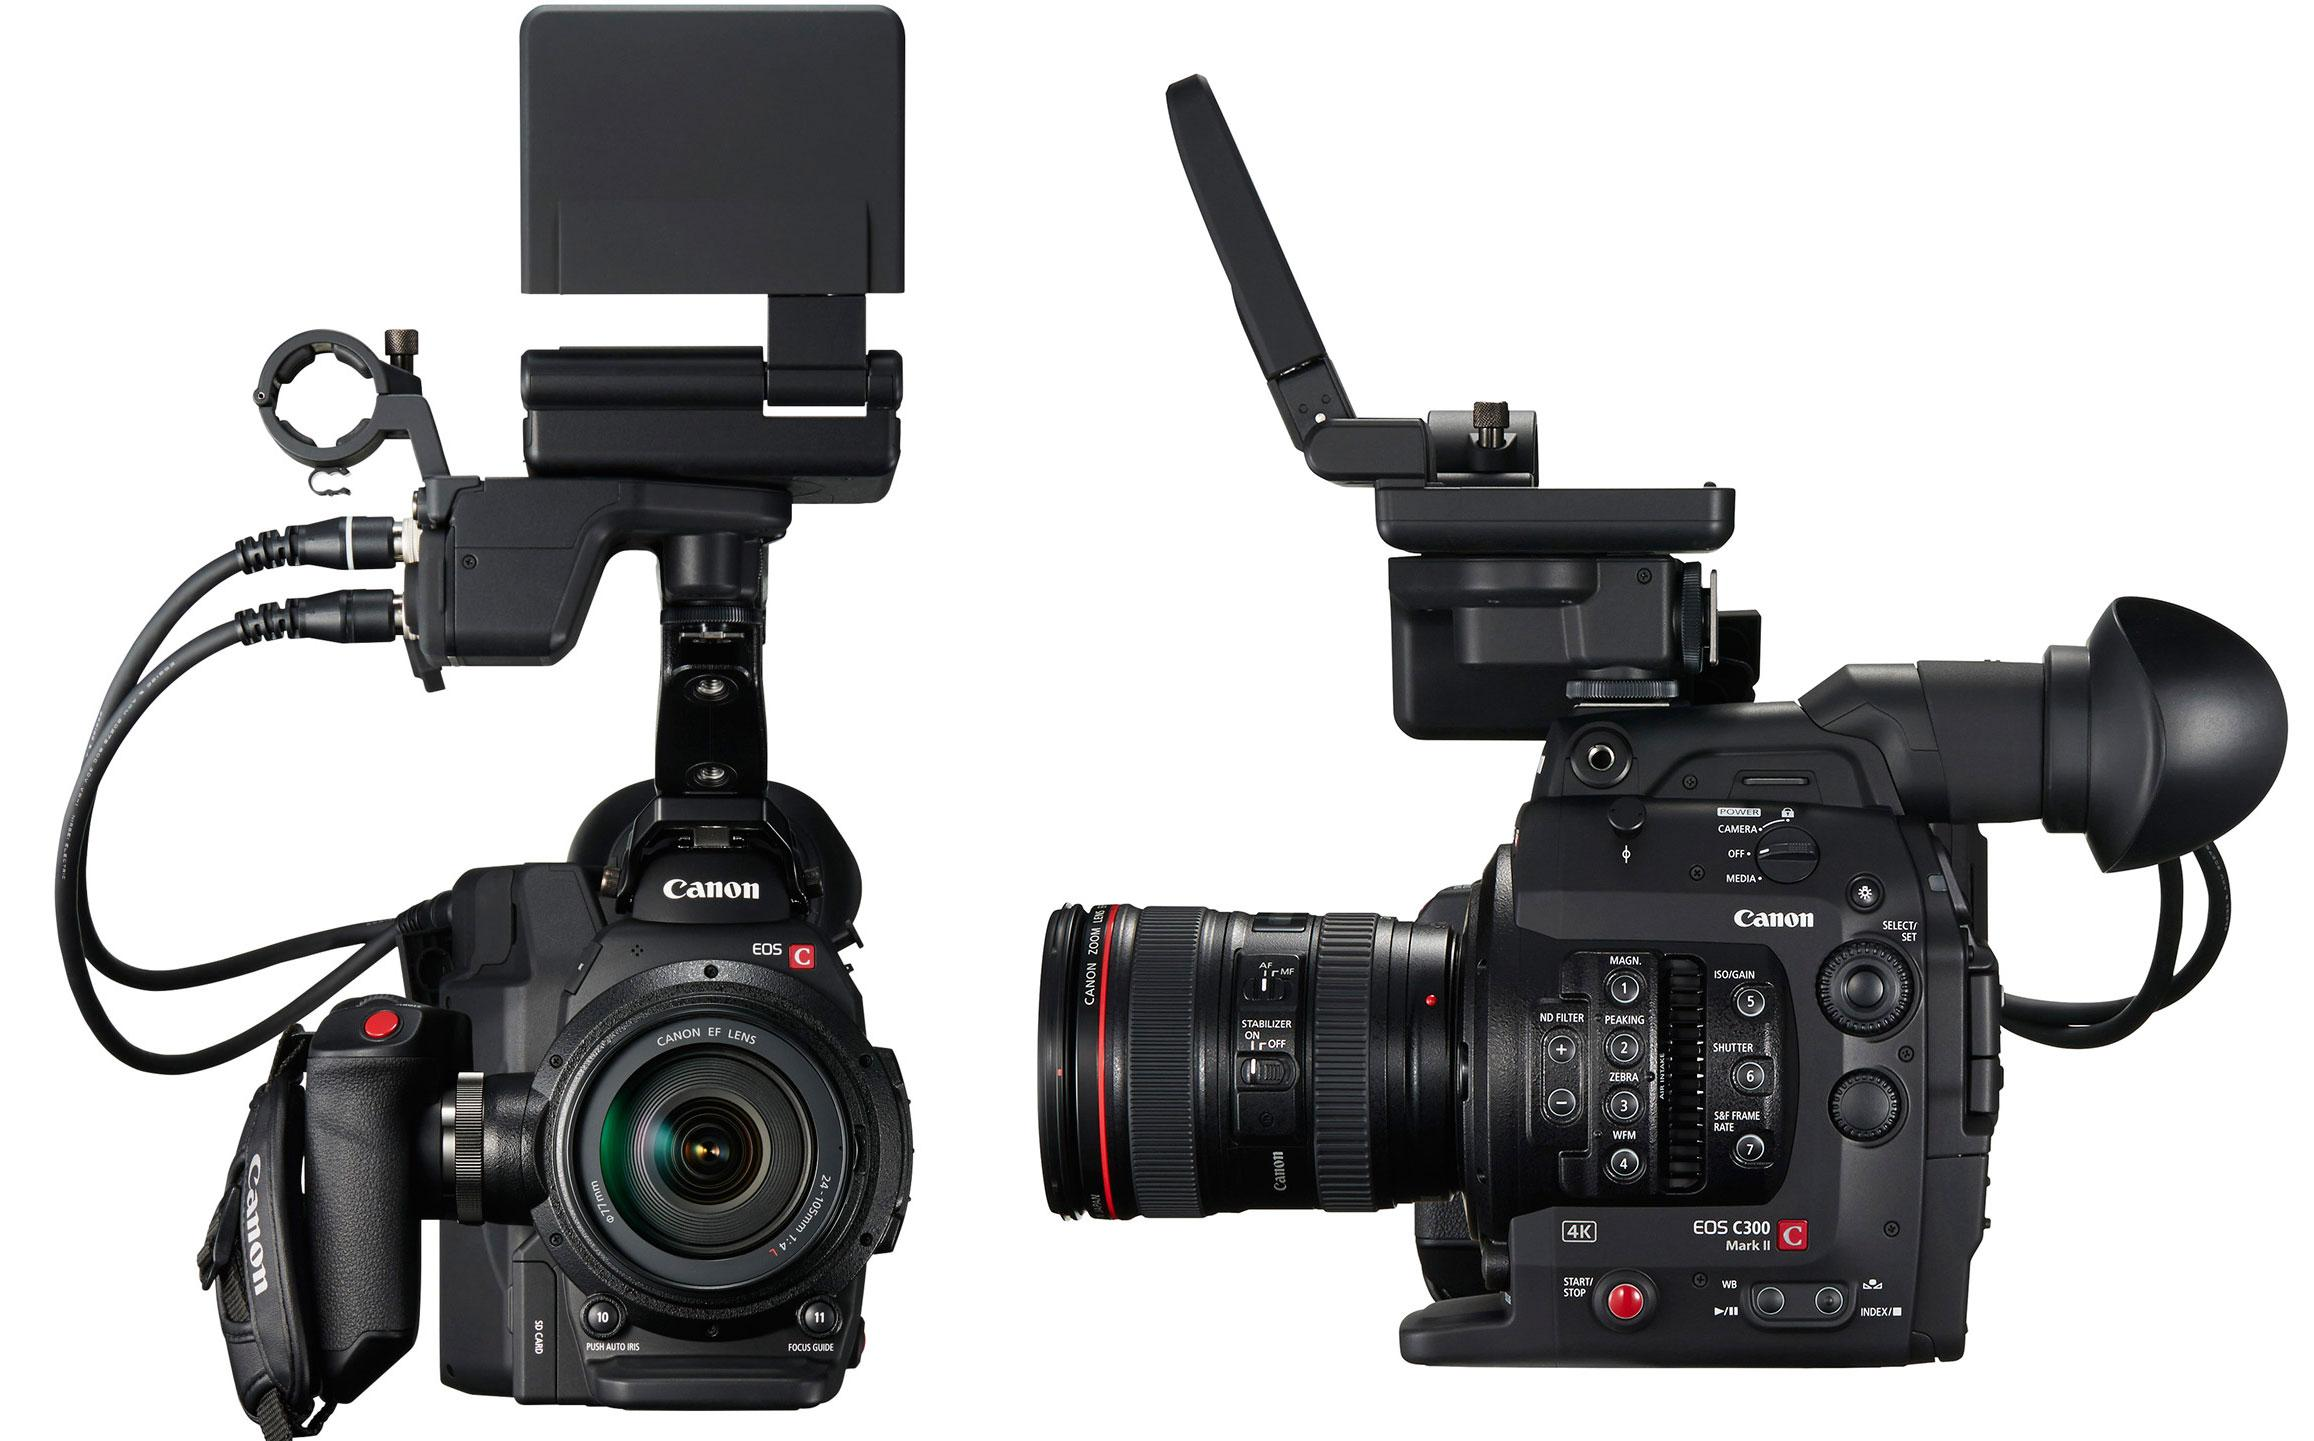 Canon EOS C300 Mark II revealed with 4K video - SlashGear